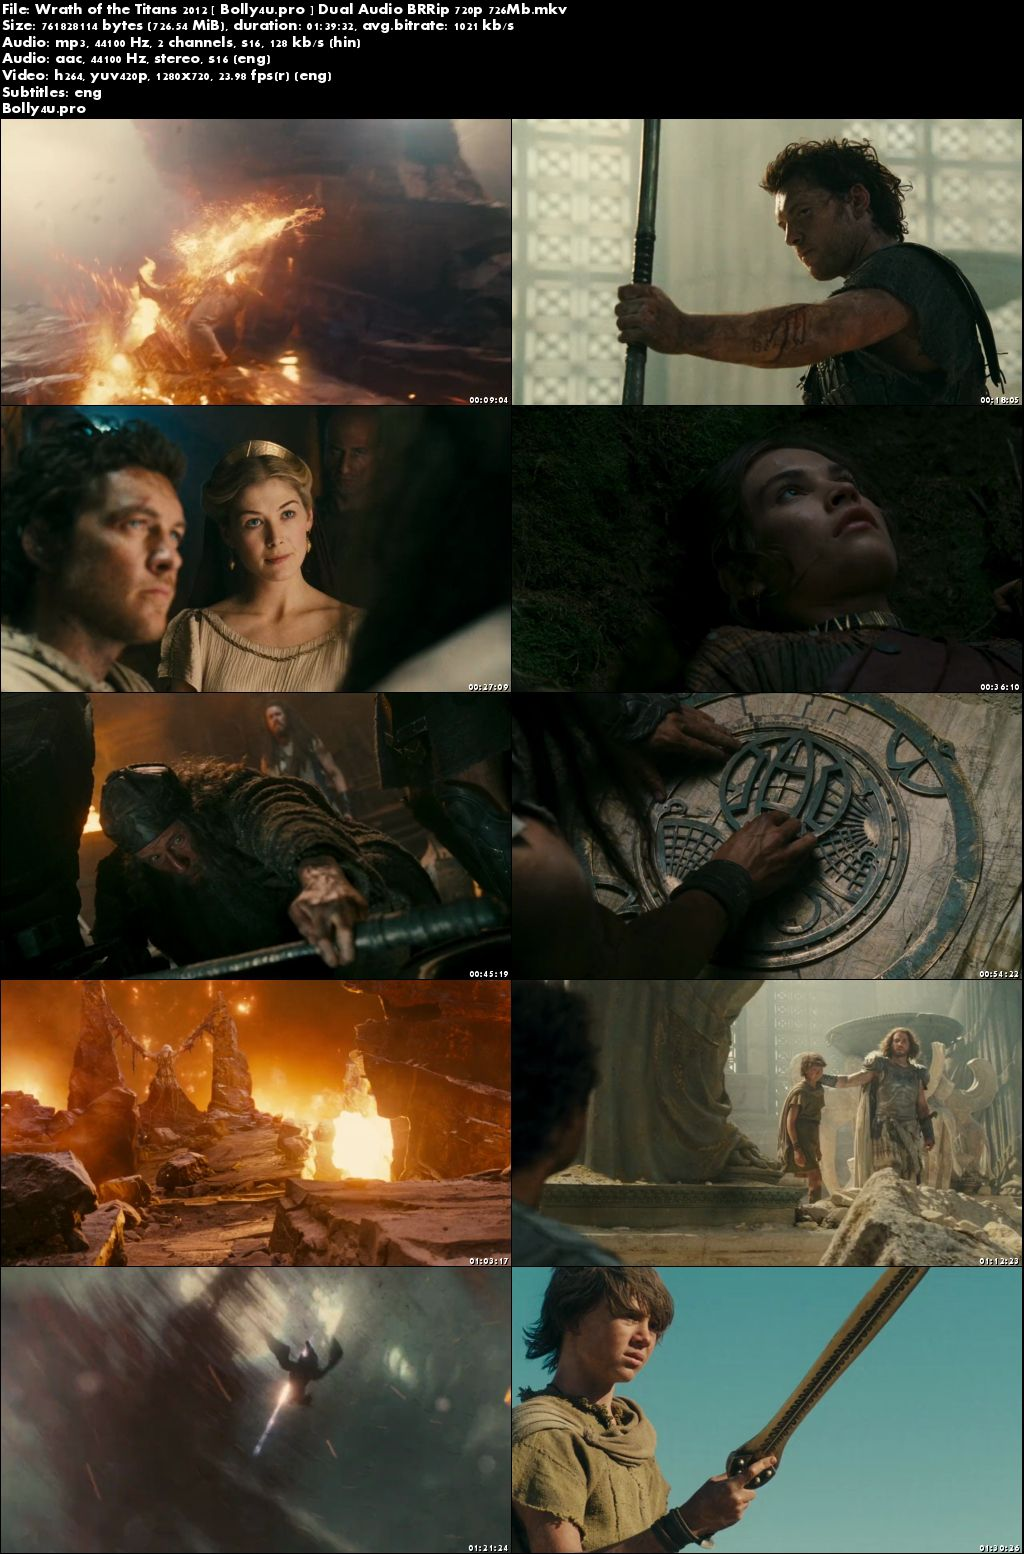 Wrath of the Titans 2012 BRRip 700MB Hindi Dual Audio 720p ESub Download